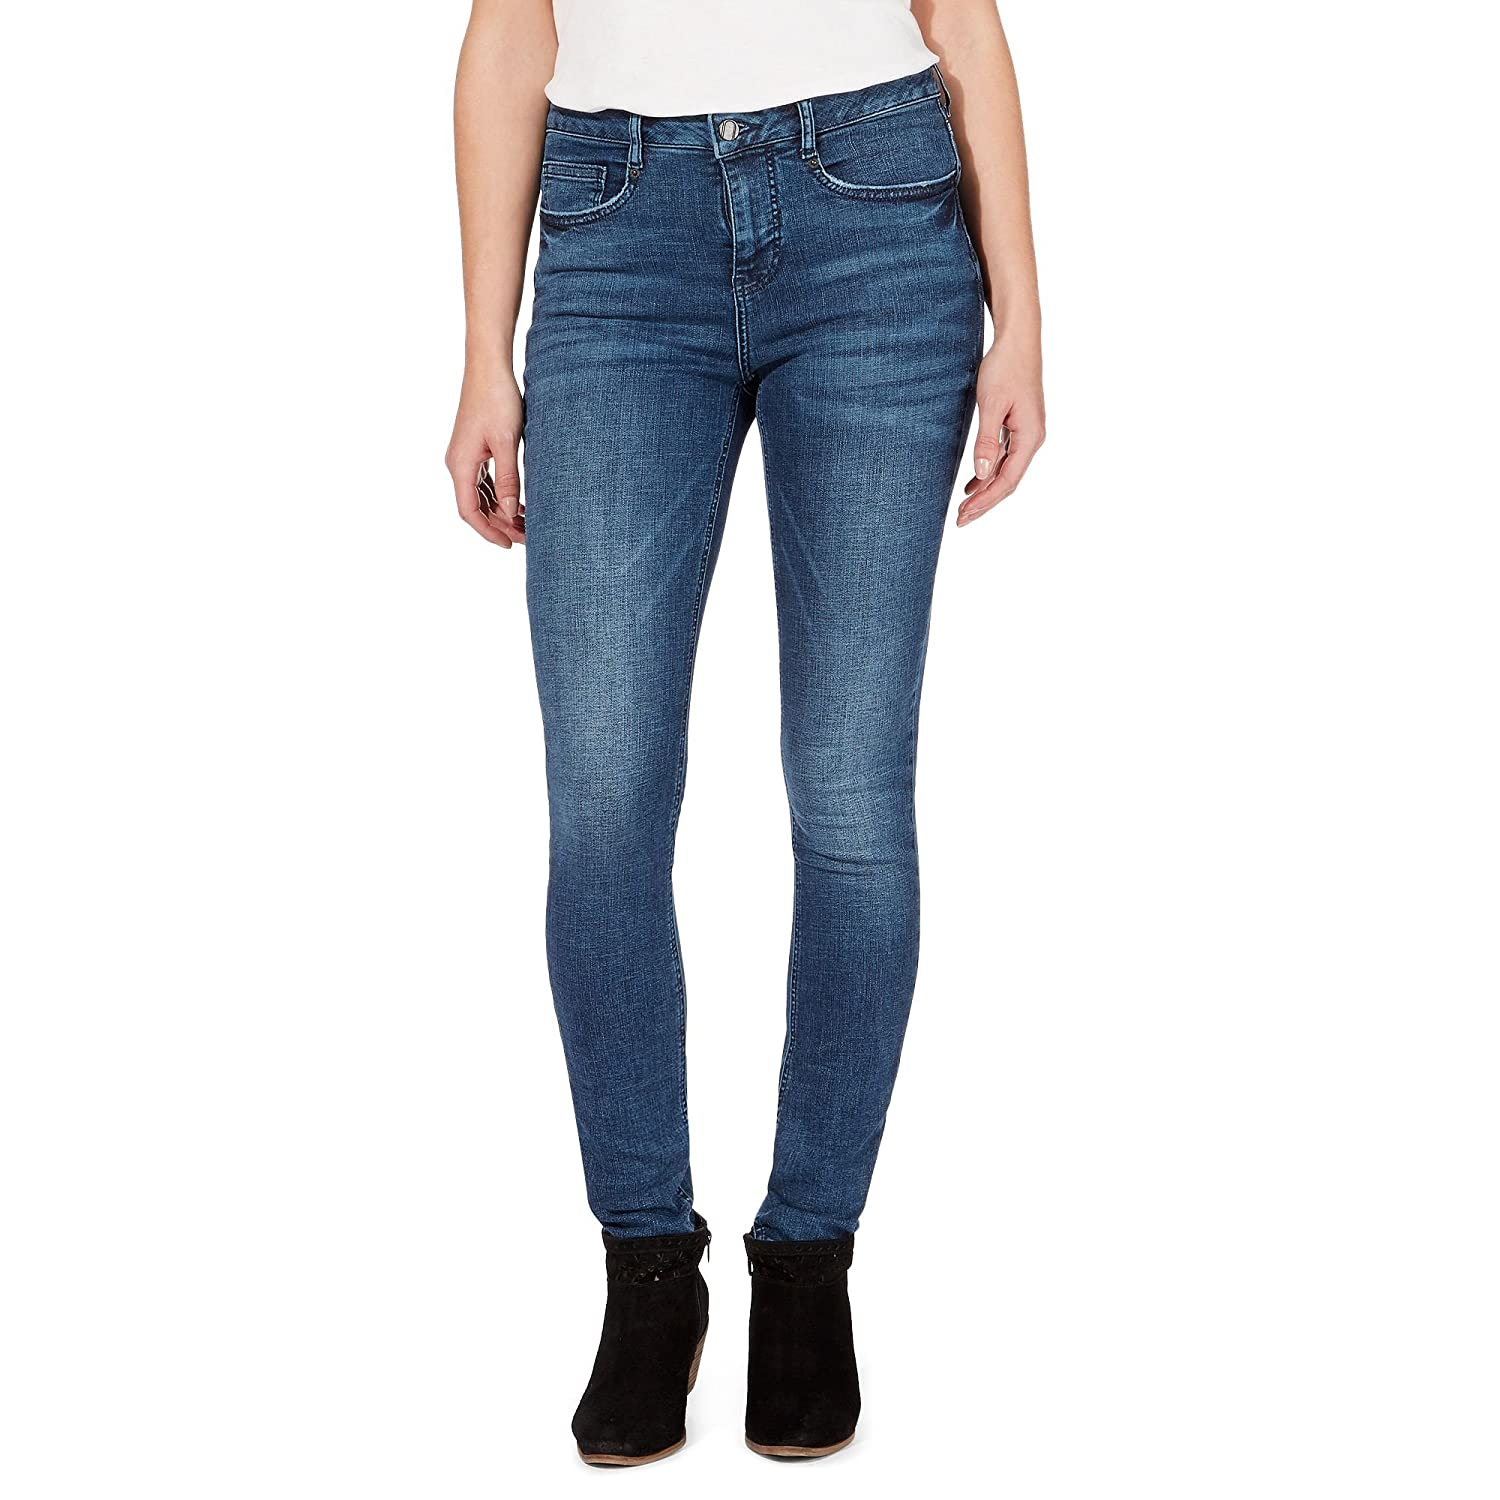 Nine By Savannah Miller Womens Dark Blue High-Waisted Slim Leg Jeans